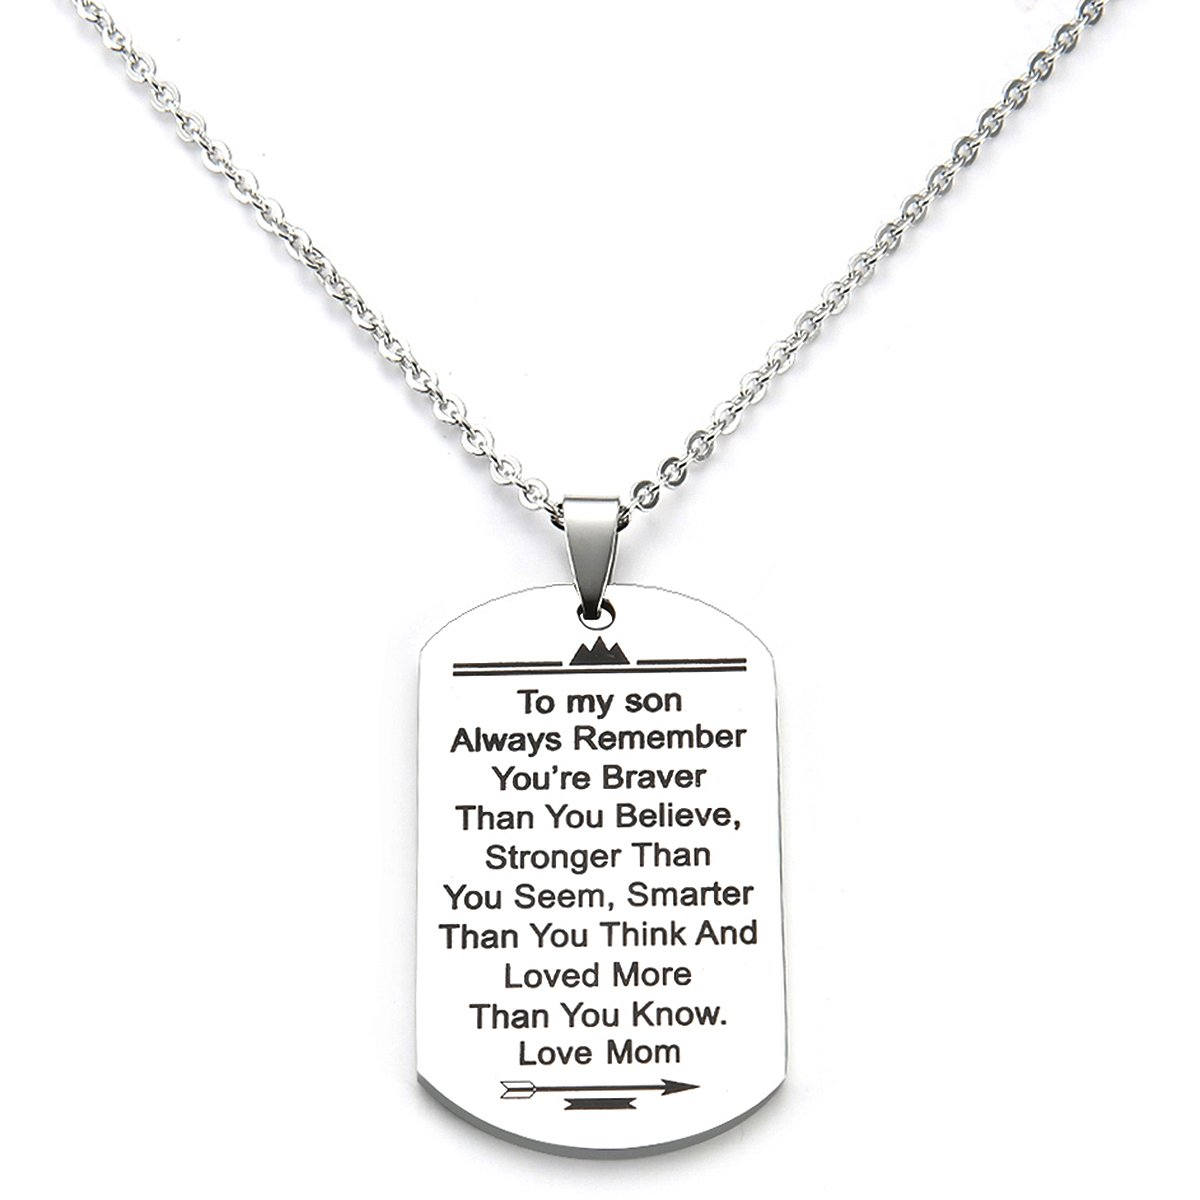 Stainless Steel Dog Tag Letters ''To my son....love mom'' Pendant Necklace,Inspirational Gifts For Son Jewelry by danjie (Image #1)